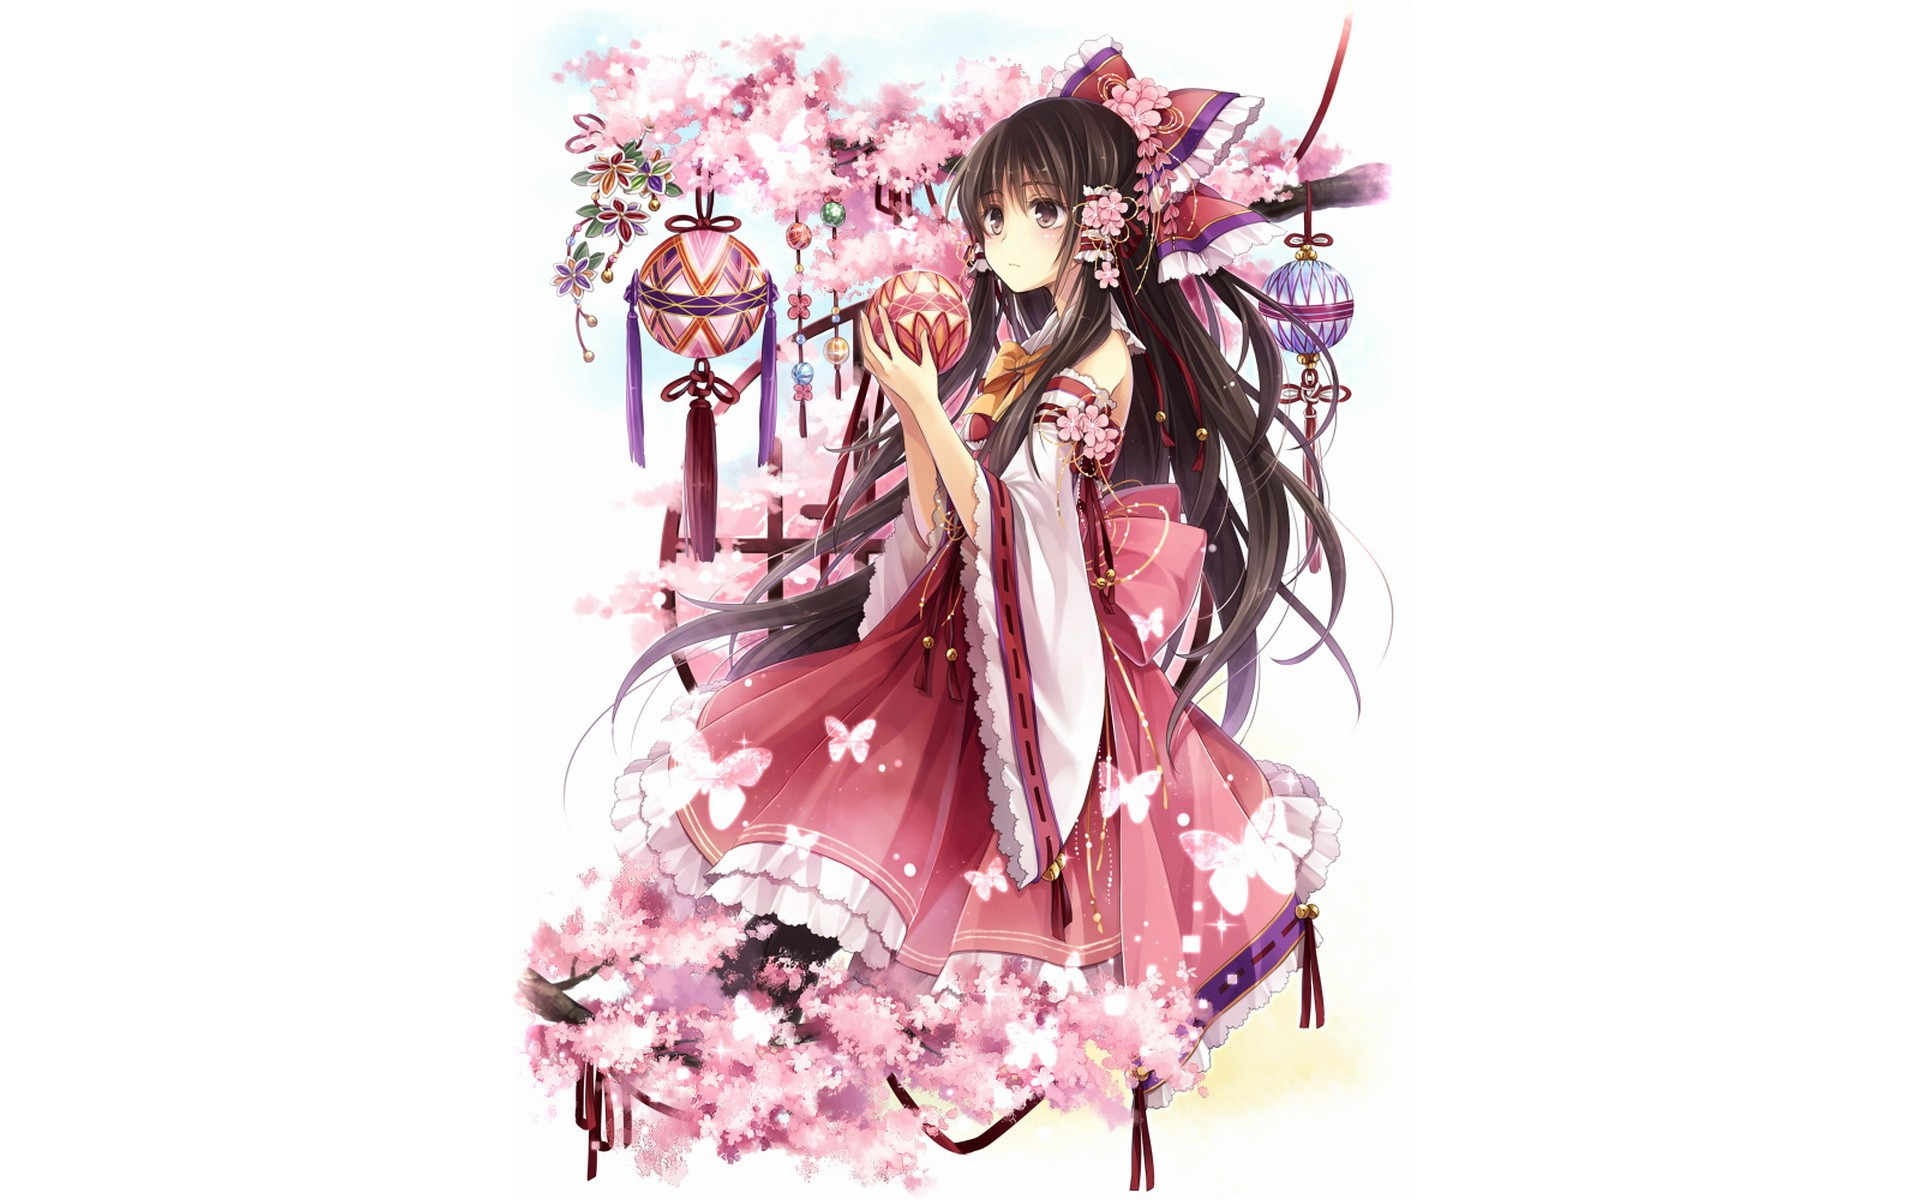 brunettes video games Touhou text long hair brown eyes Miko Hakurei Reimu Japanese clothes anime girls detached sleeves Hagiwara Rin